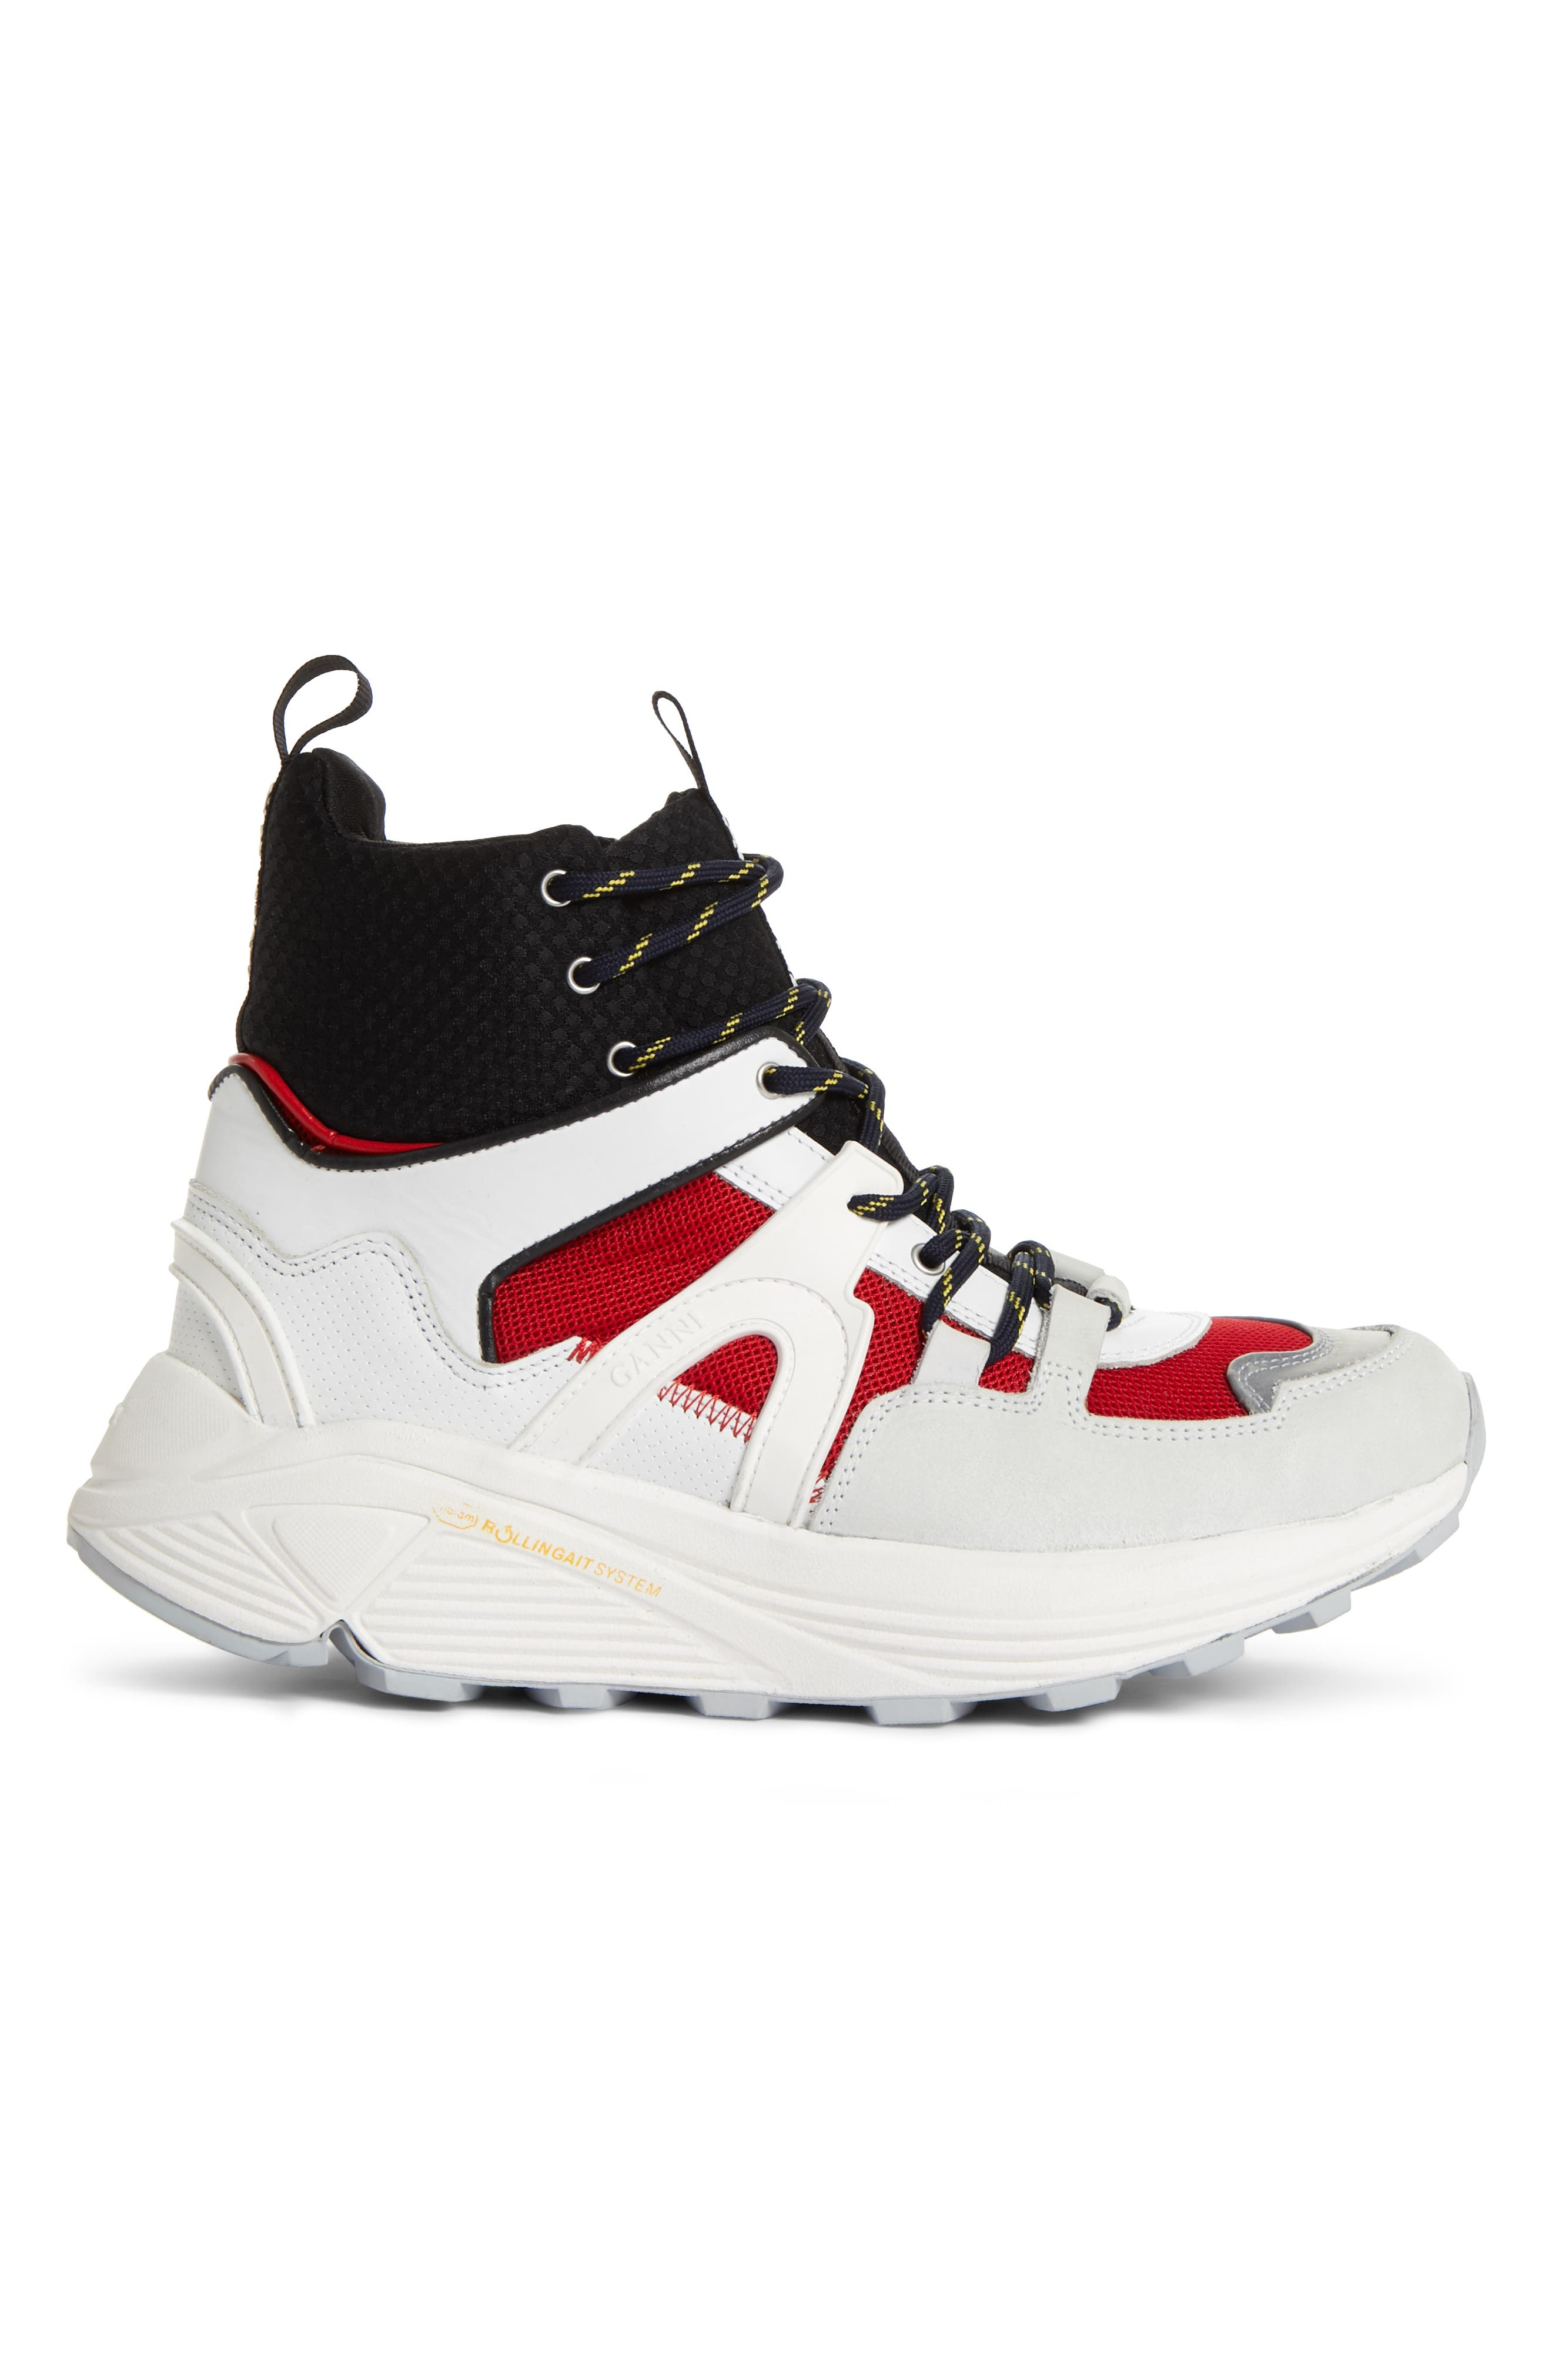 GANNI,                             High Top Tech Sneaker,                             Alternate thumbnail 3, color,                             FIERY RED 403